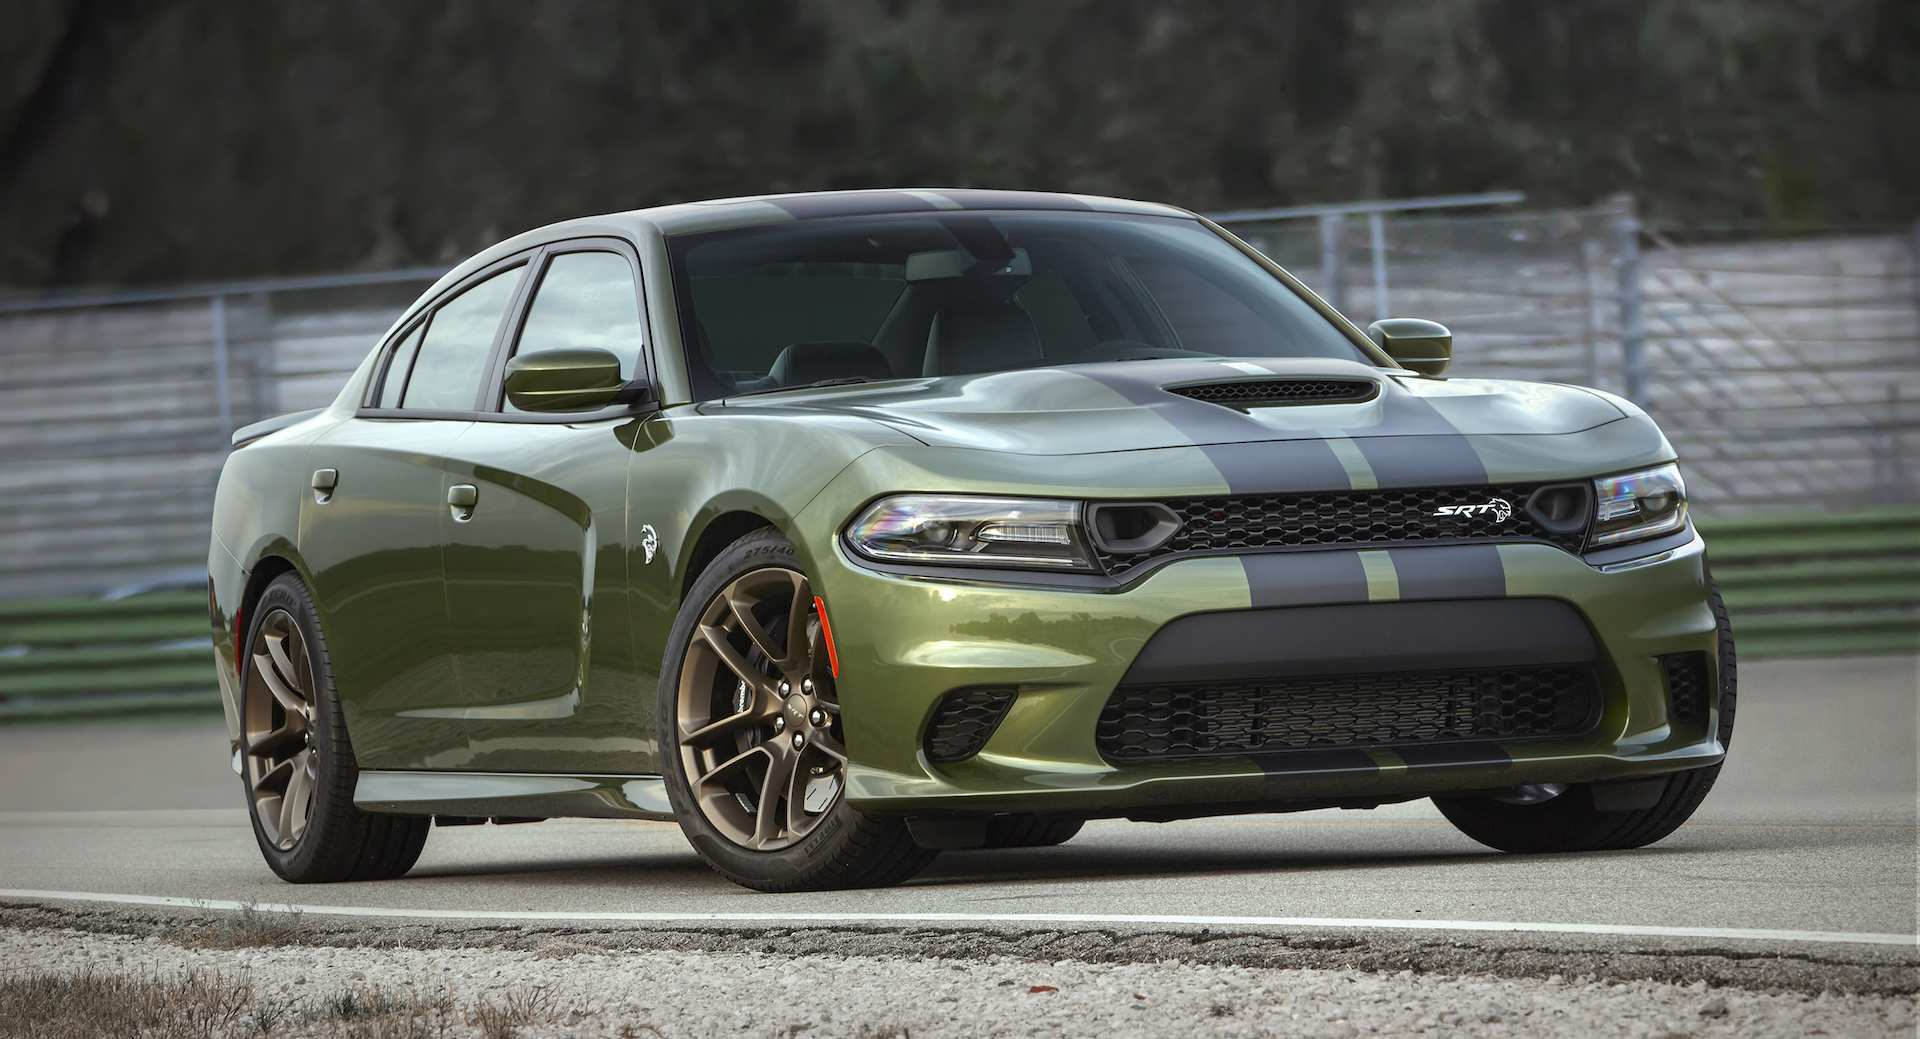 89 Great The New Dodge 2019 Charger Release Date Pricing for The New Dodge 2019 Charger Release Date